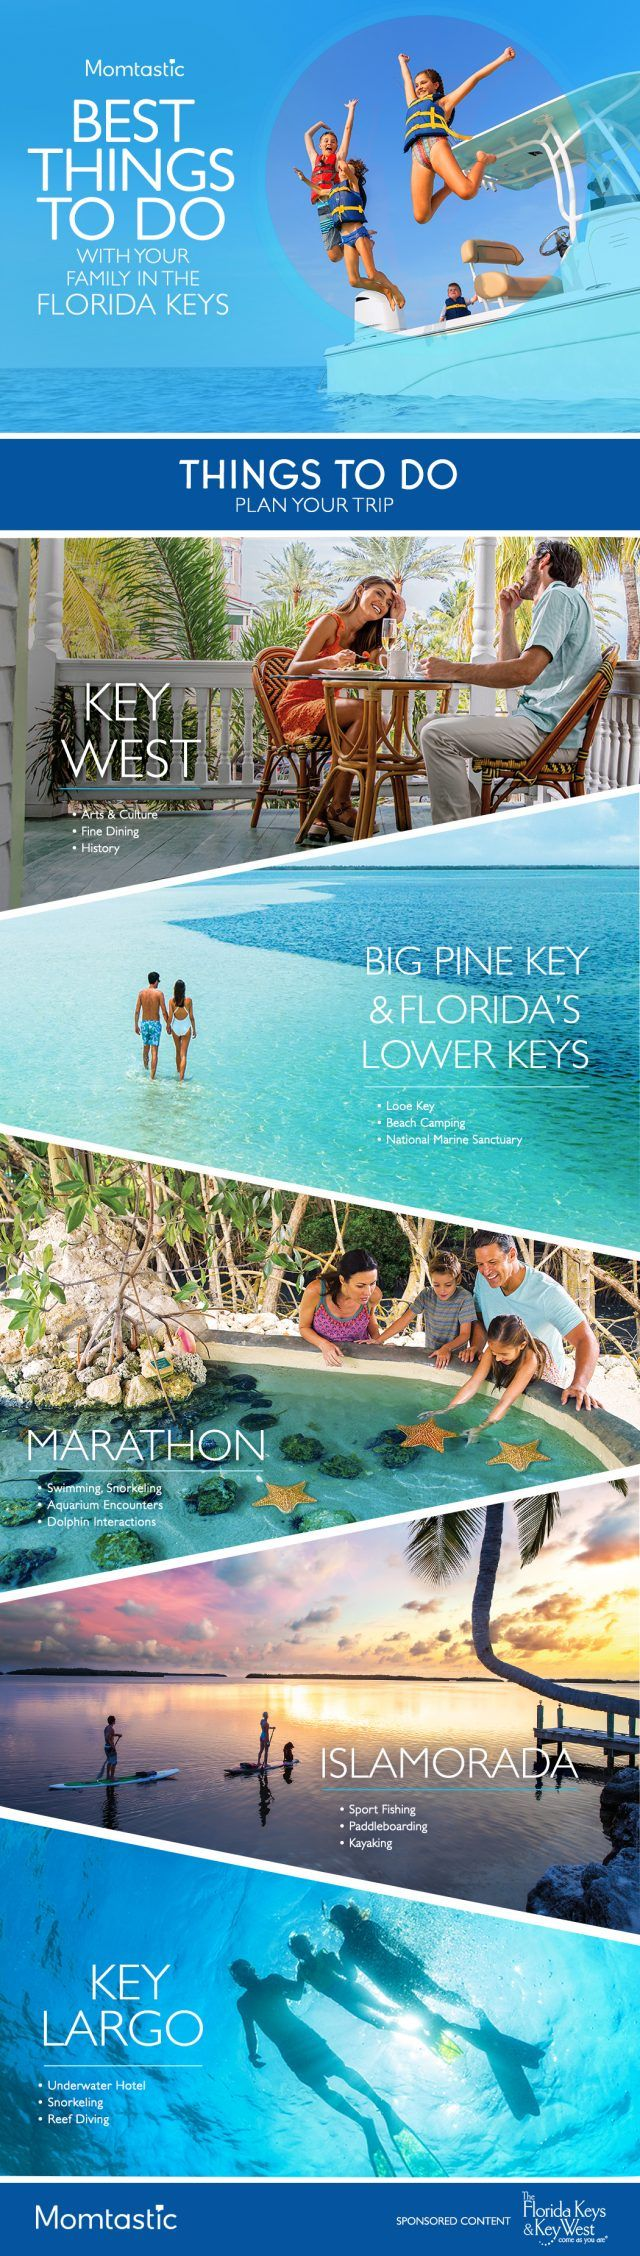 The Best Things To Do With Your Family In The Florida Keys Florida Beaches Vacation Affordable Family Beach Vacations Florida Travel